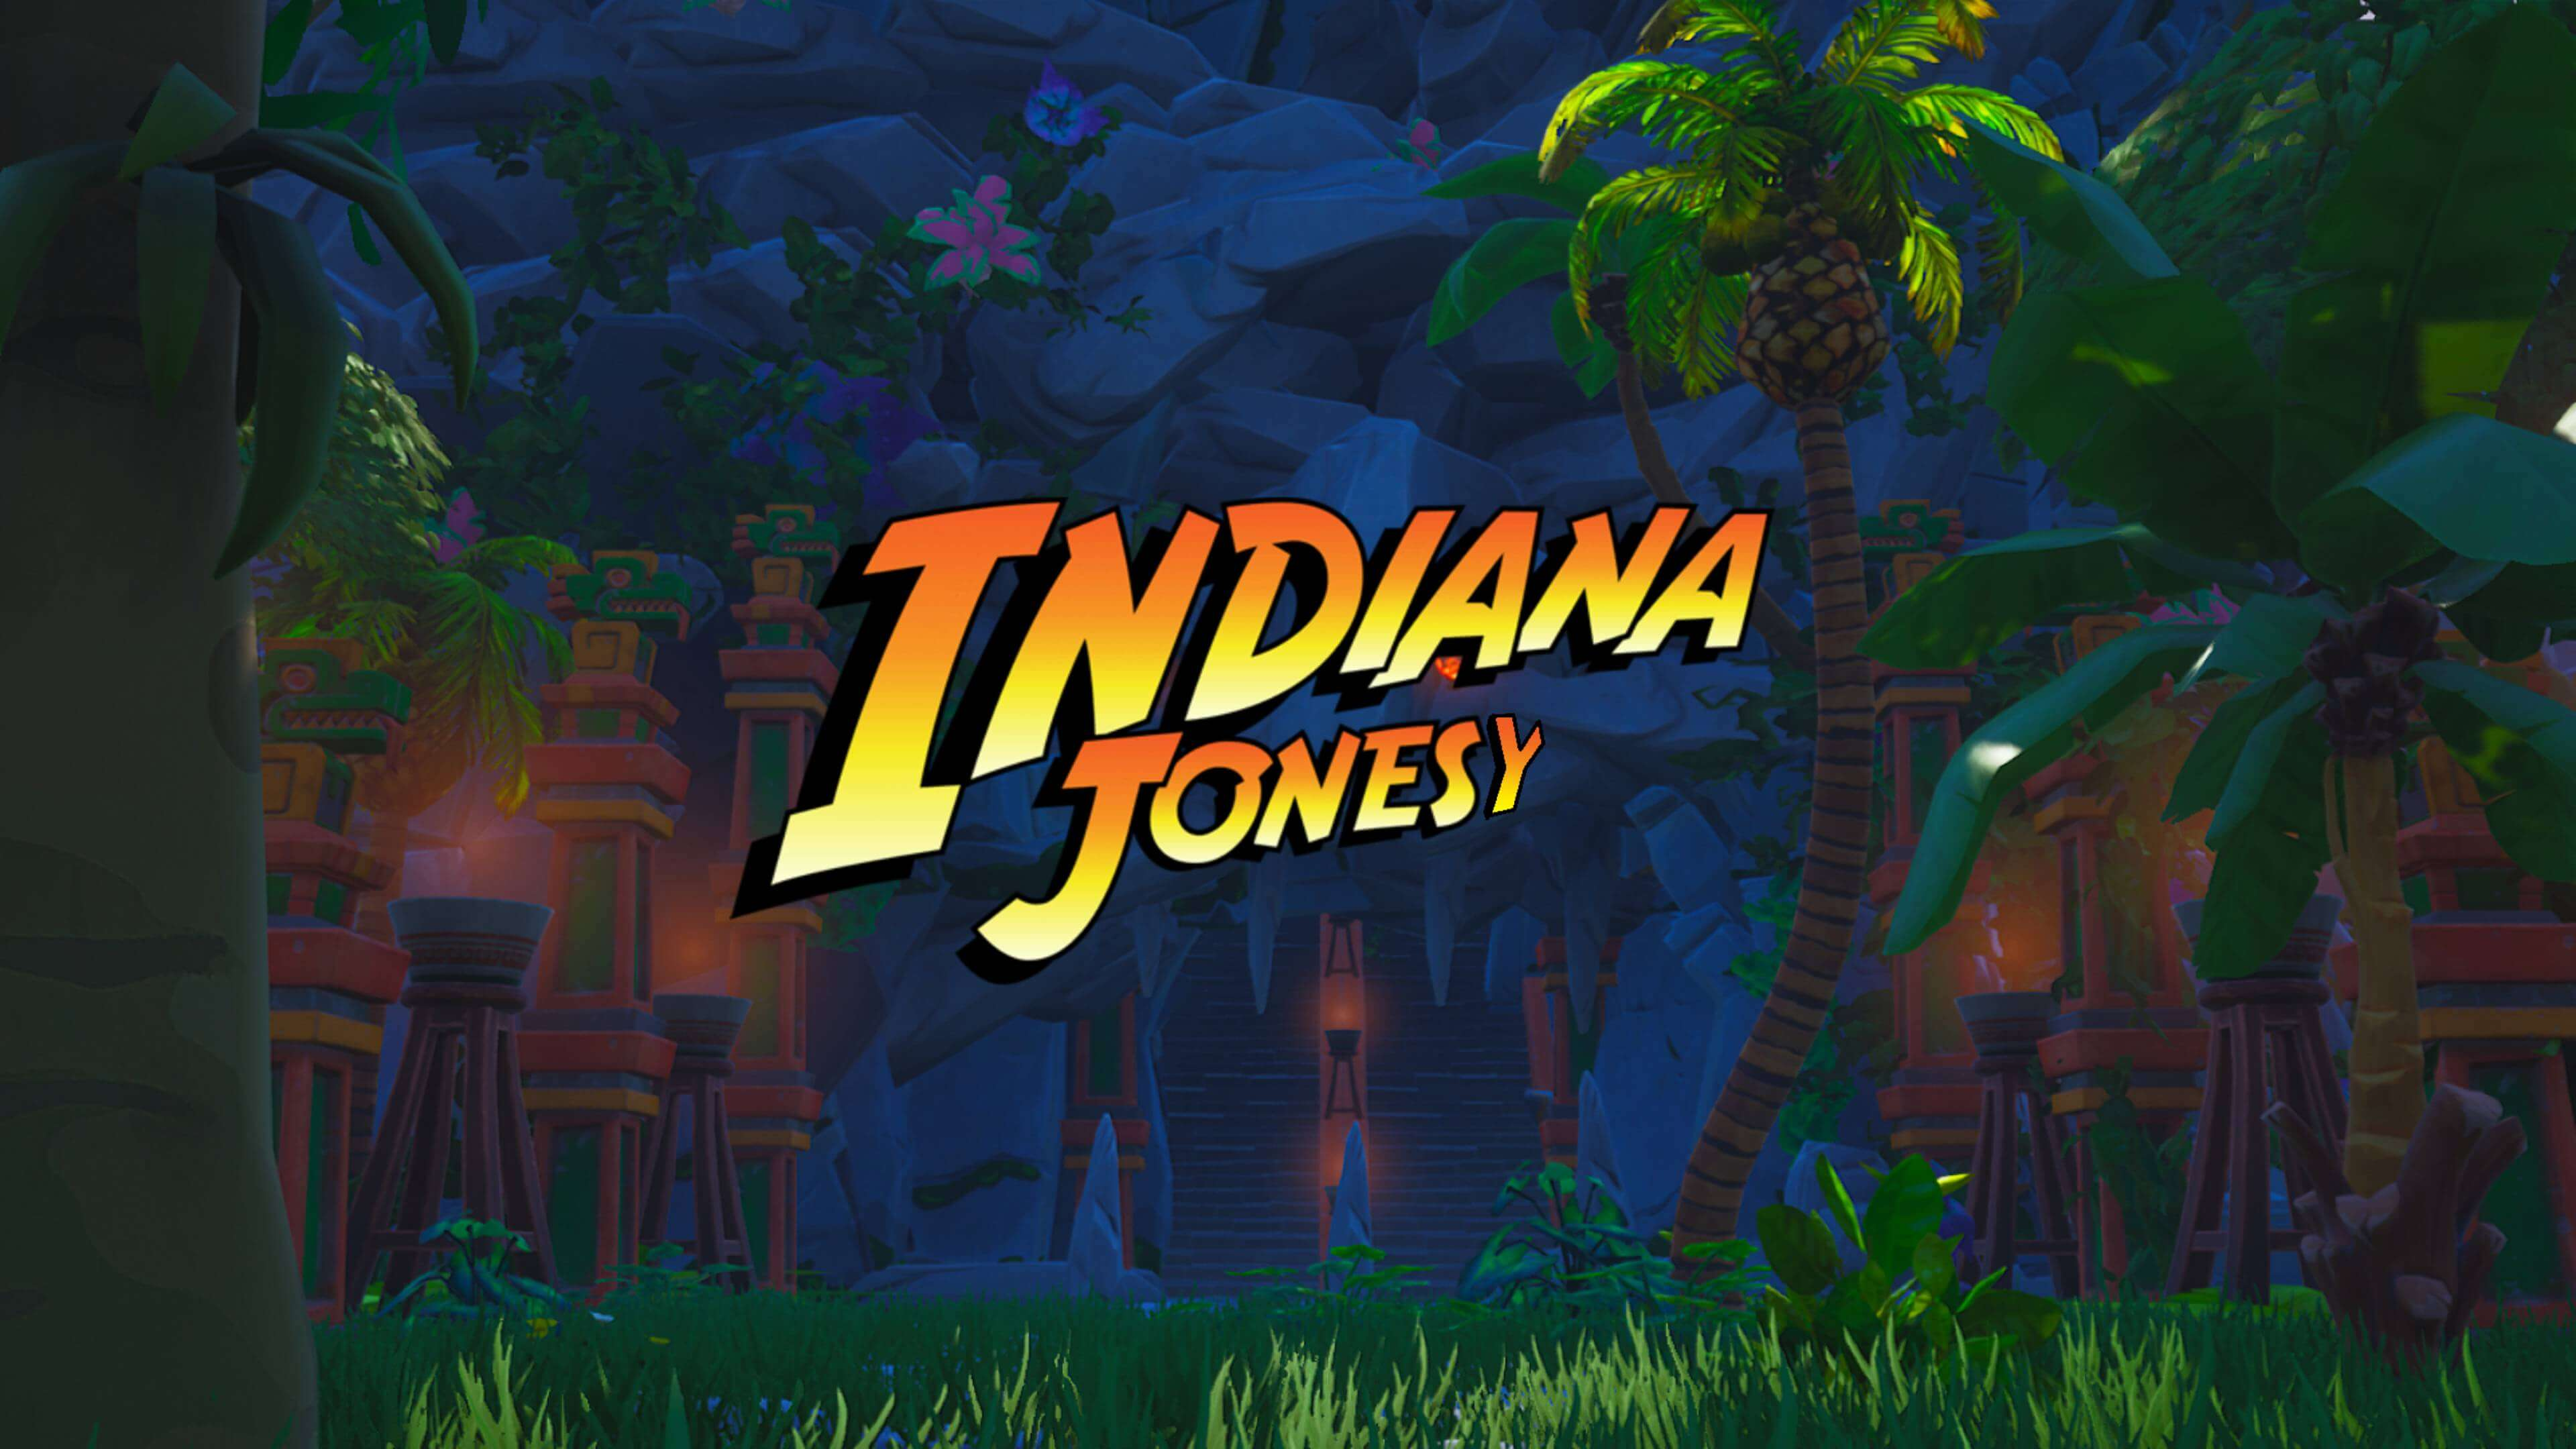 INDIANA JONESY'S ADVENTURE